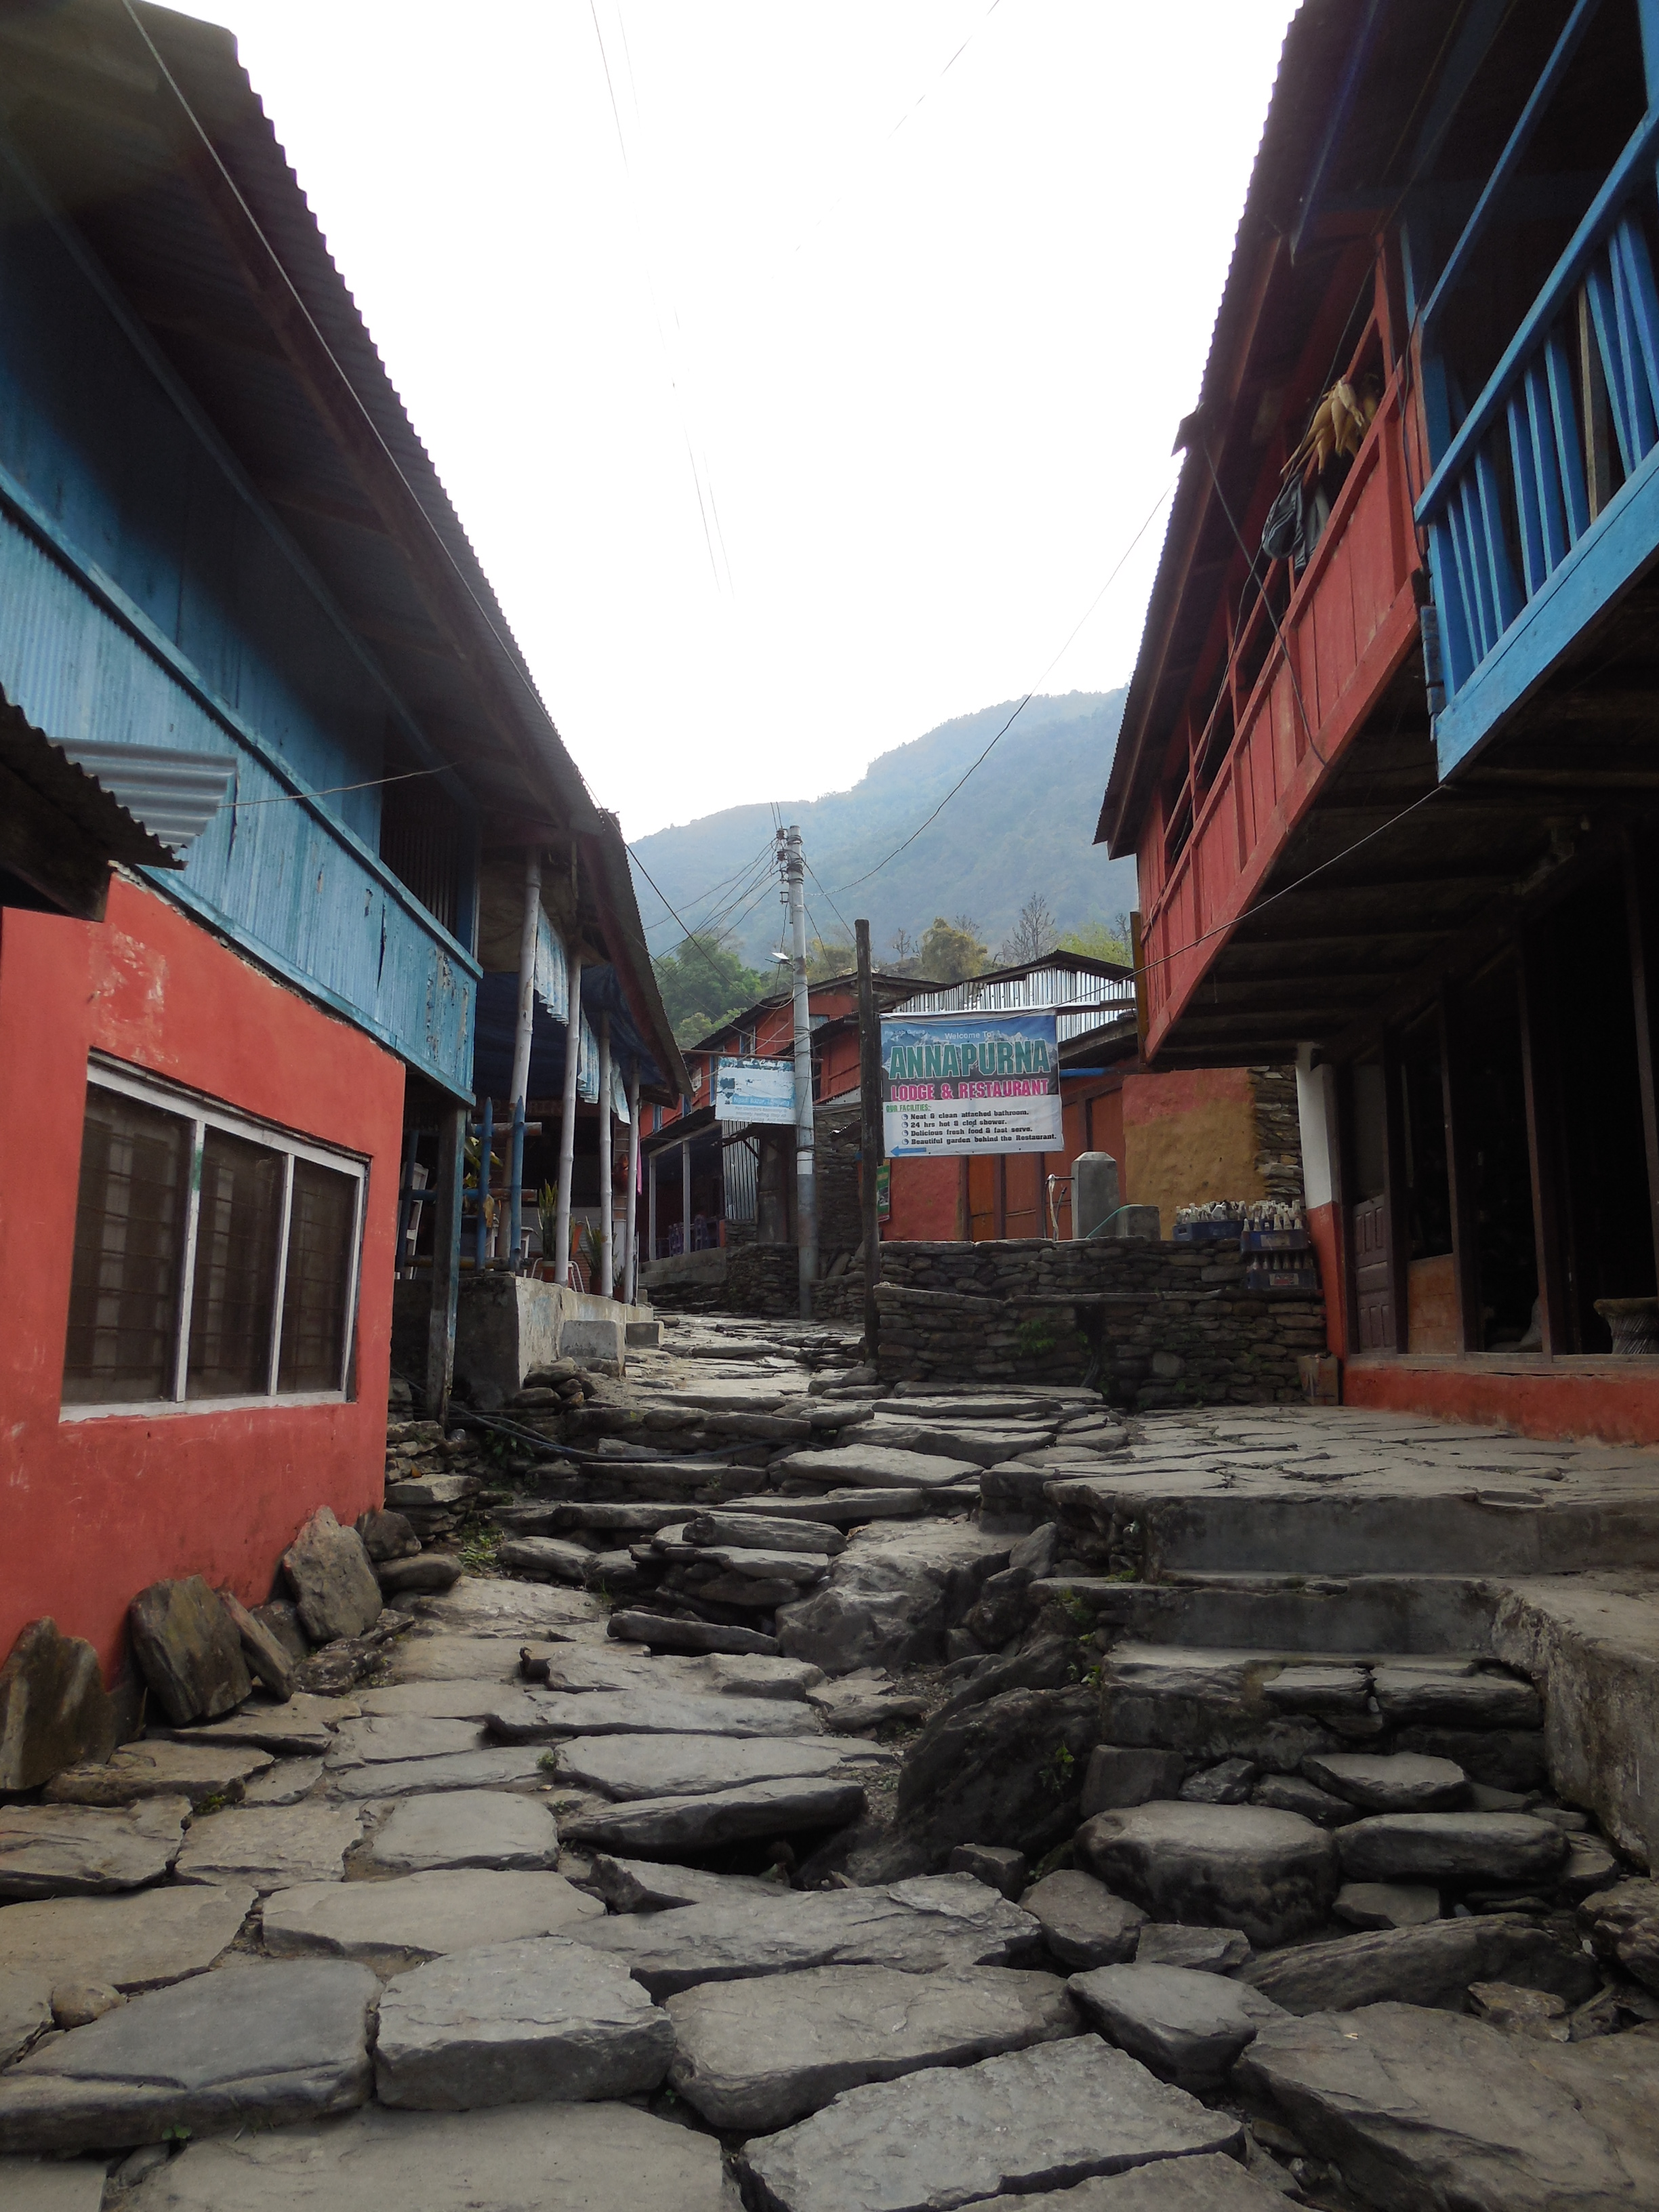 Typical village in the Himalayas